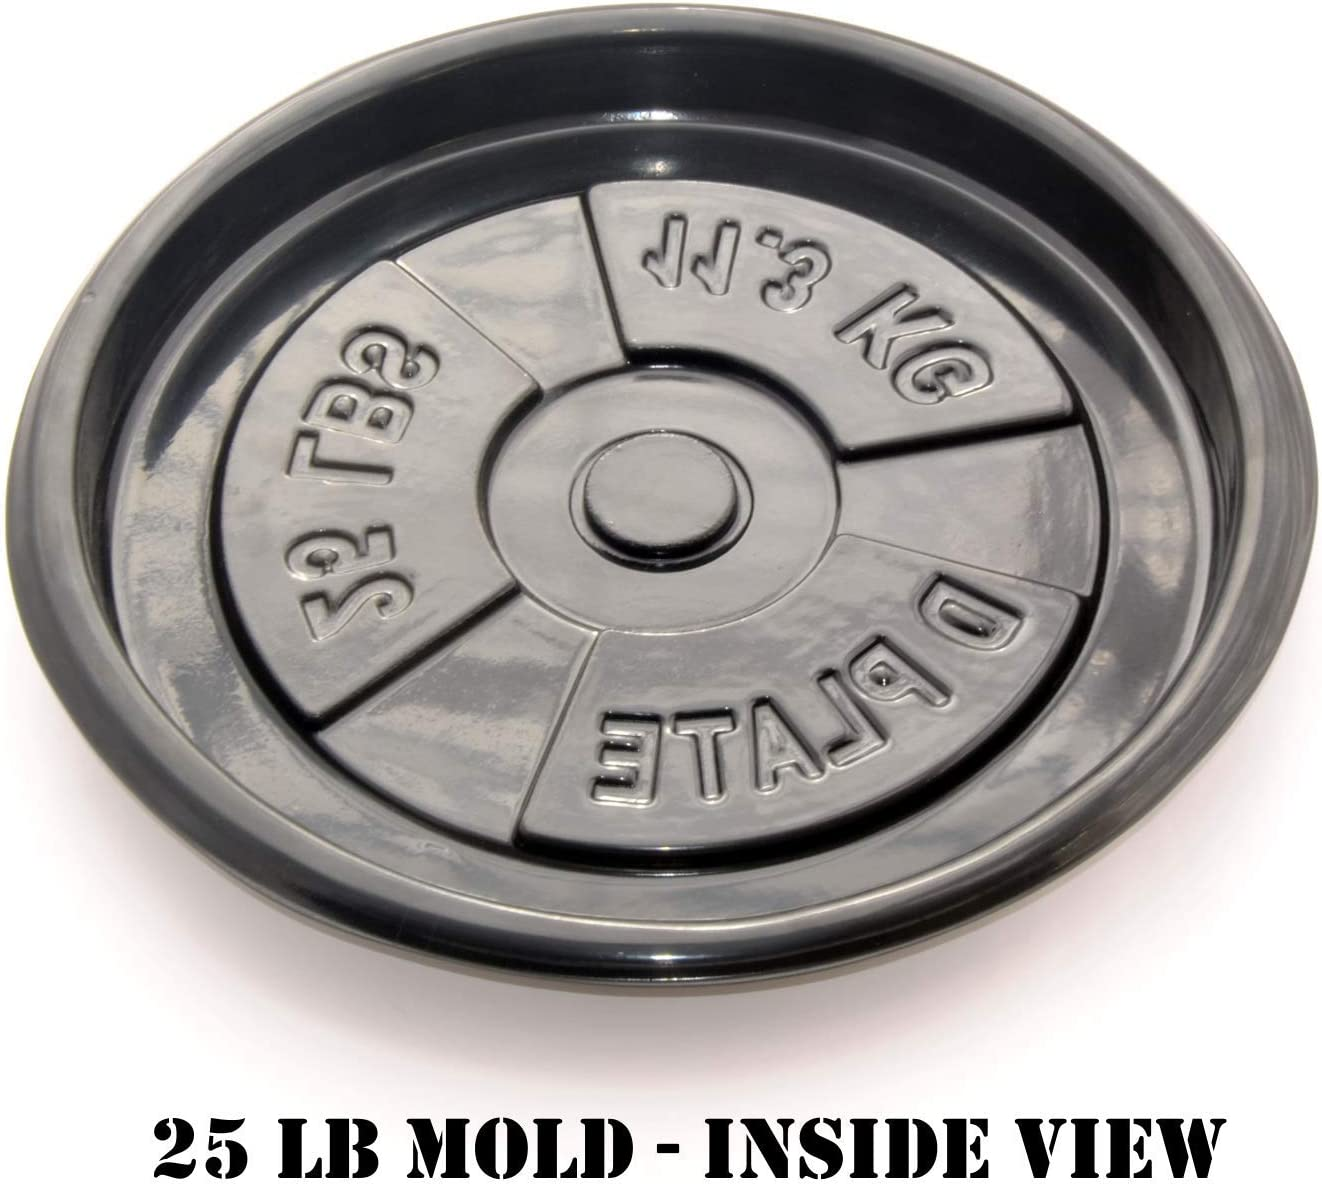 25-45 LB Concrete Weight Plate Molds Triumph MFG Mold for DIY ...